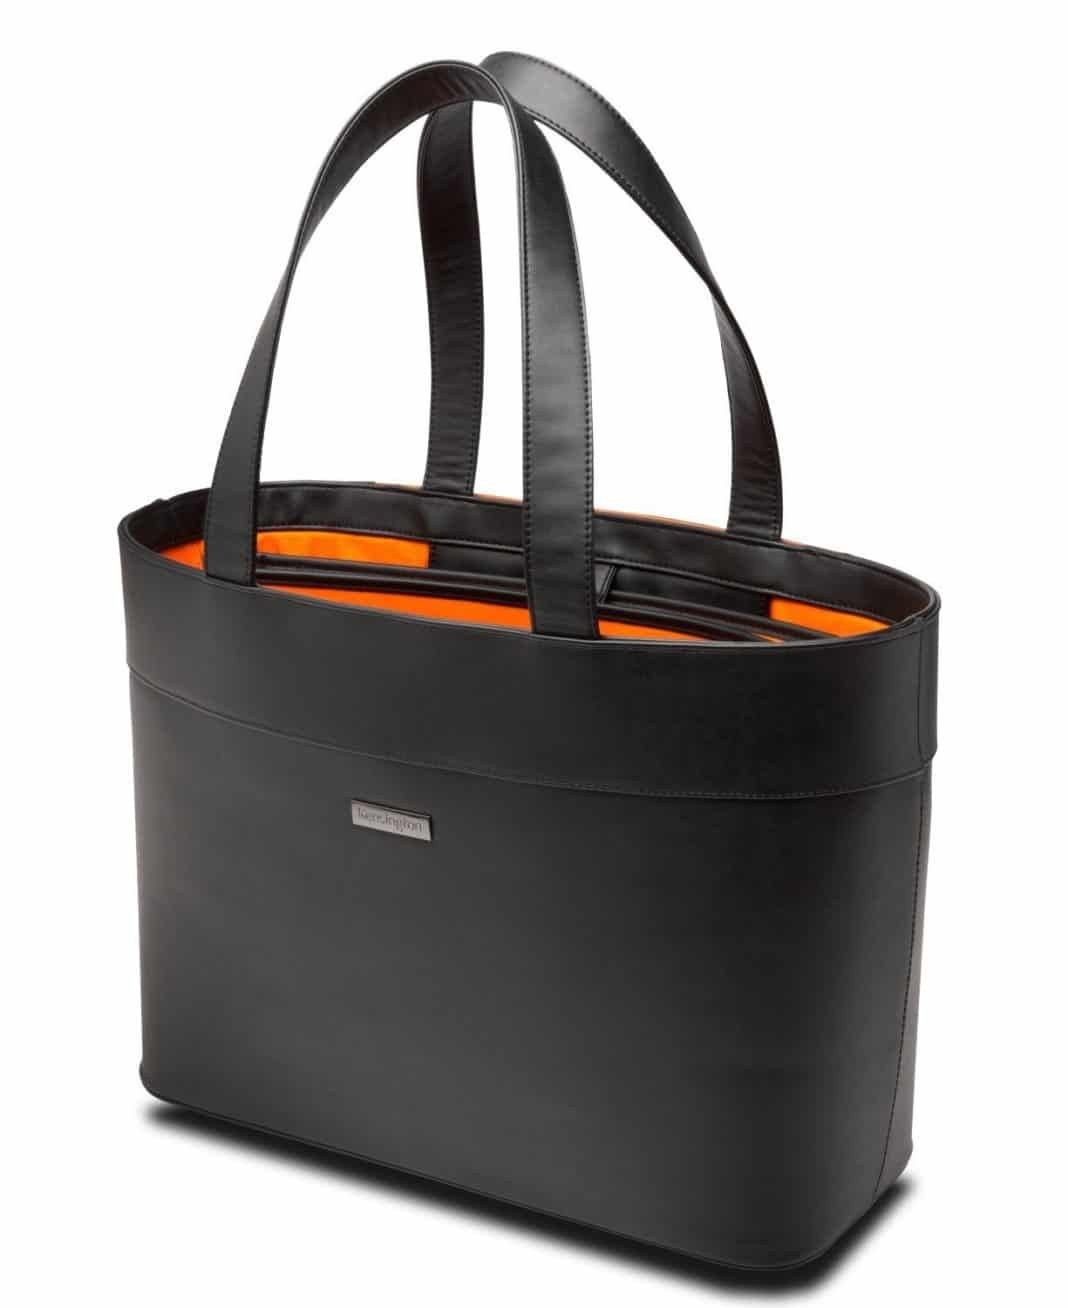 travel tote bags - Kensington